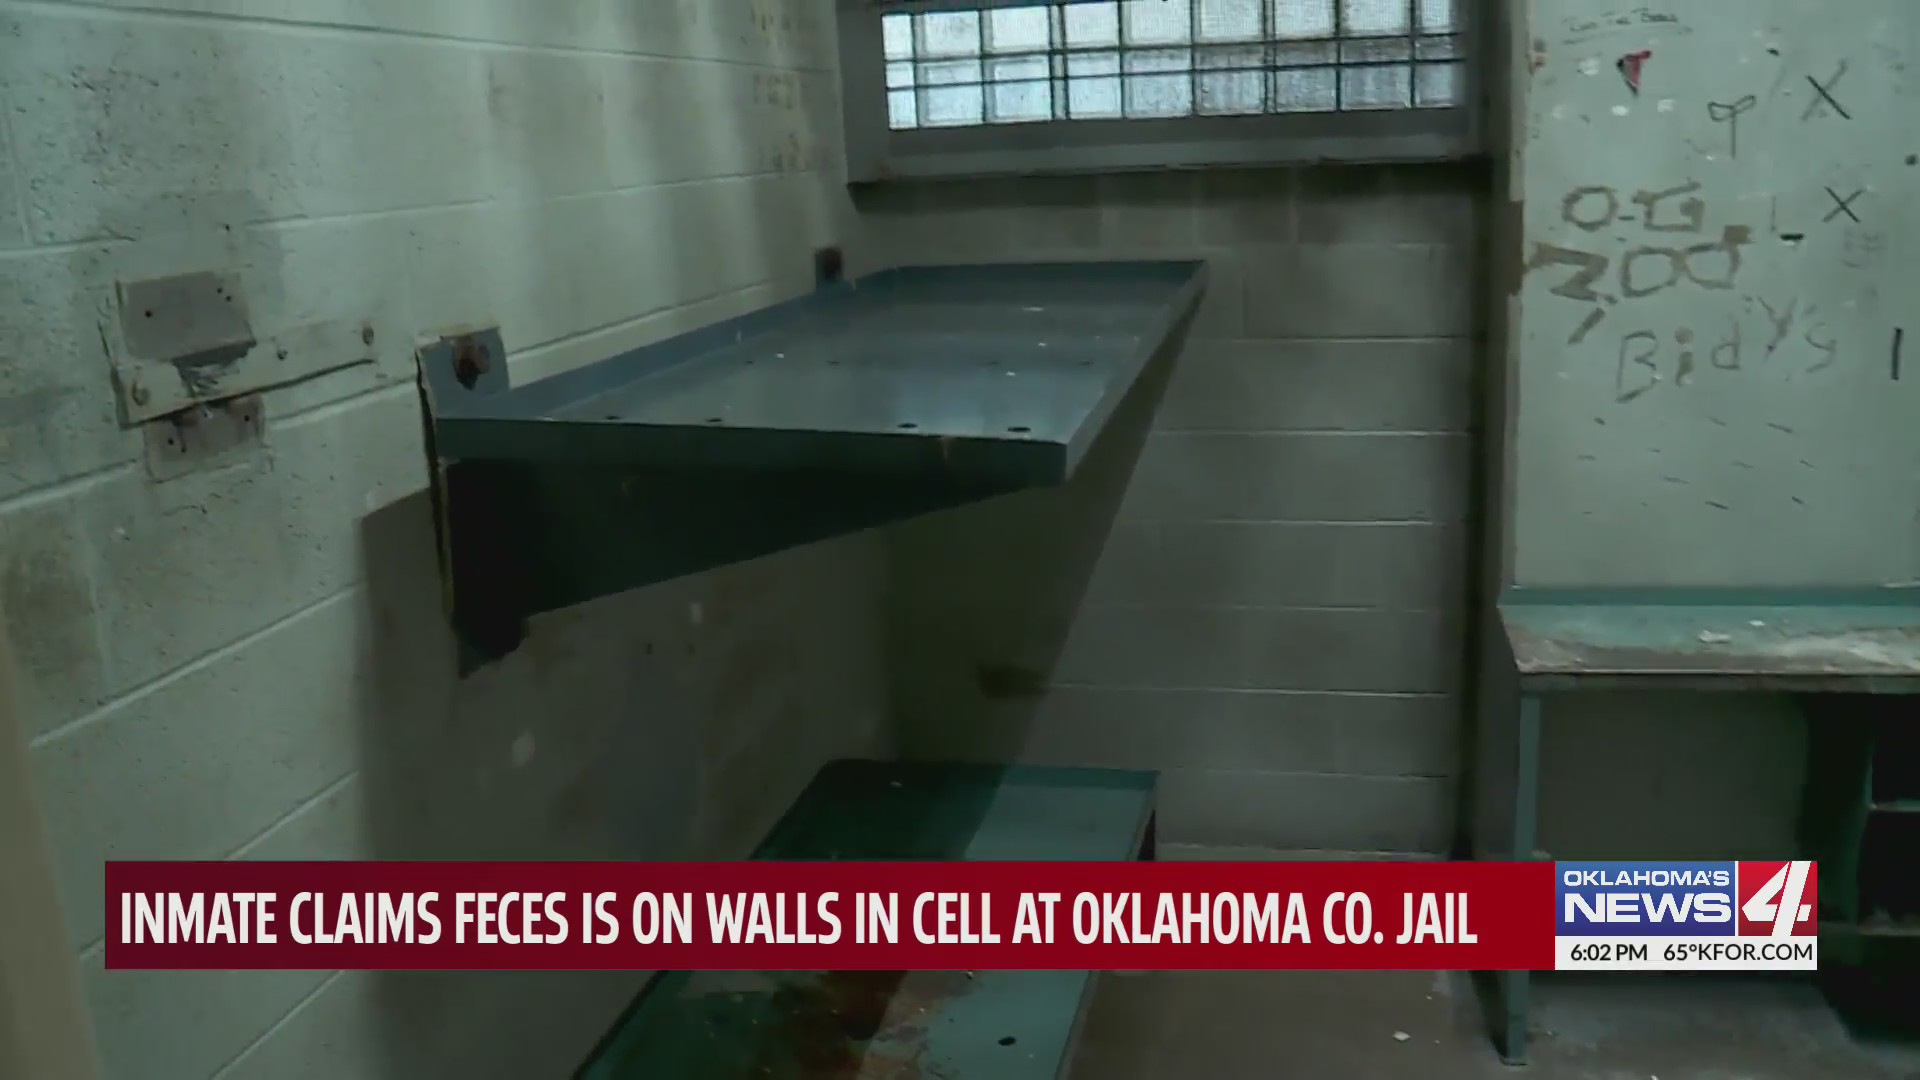 Pregnant Oklahoma County Jail inmate claims she is sleeping in cell filled with feces, black mold and bed bugs